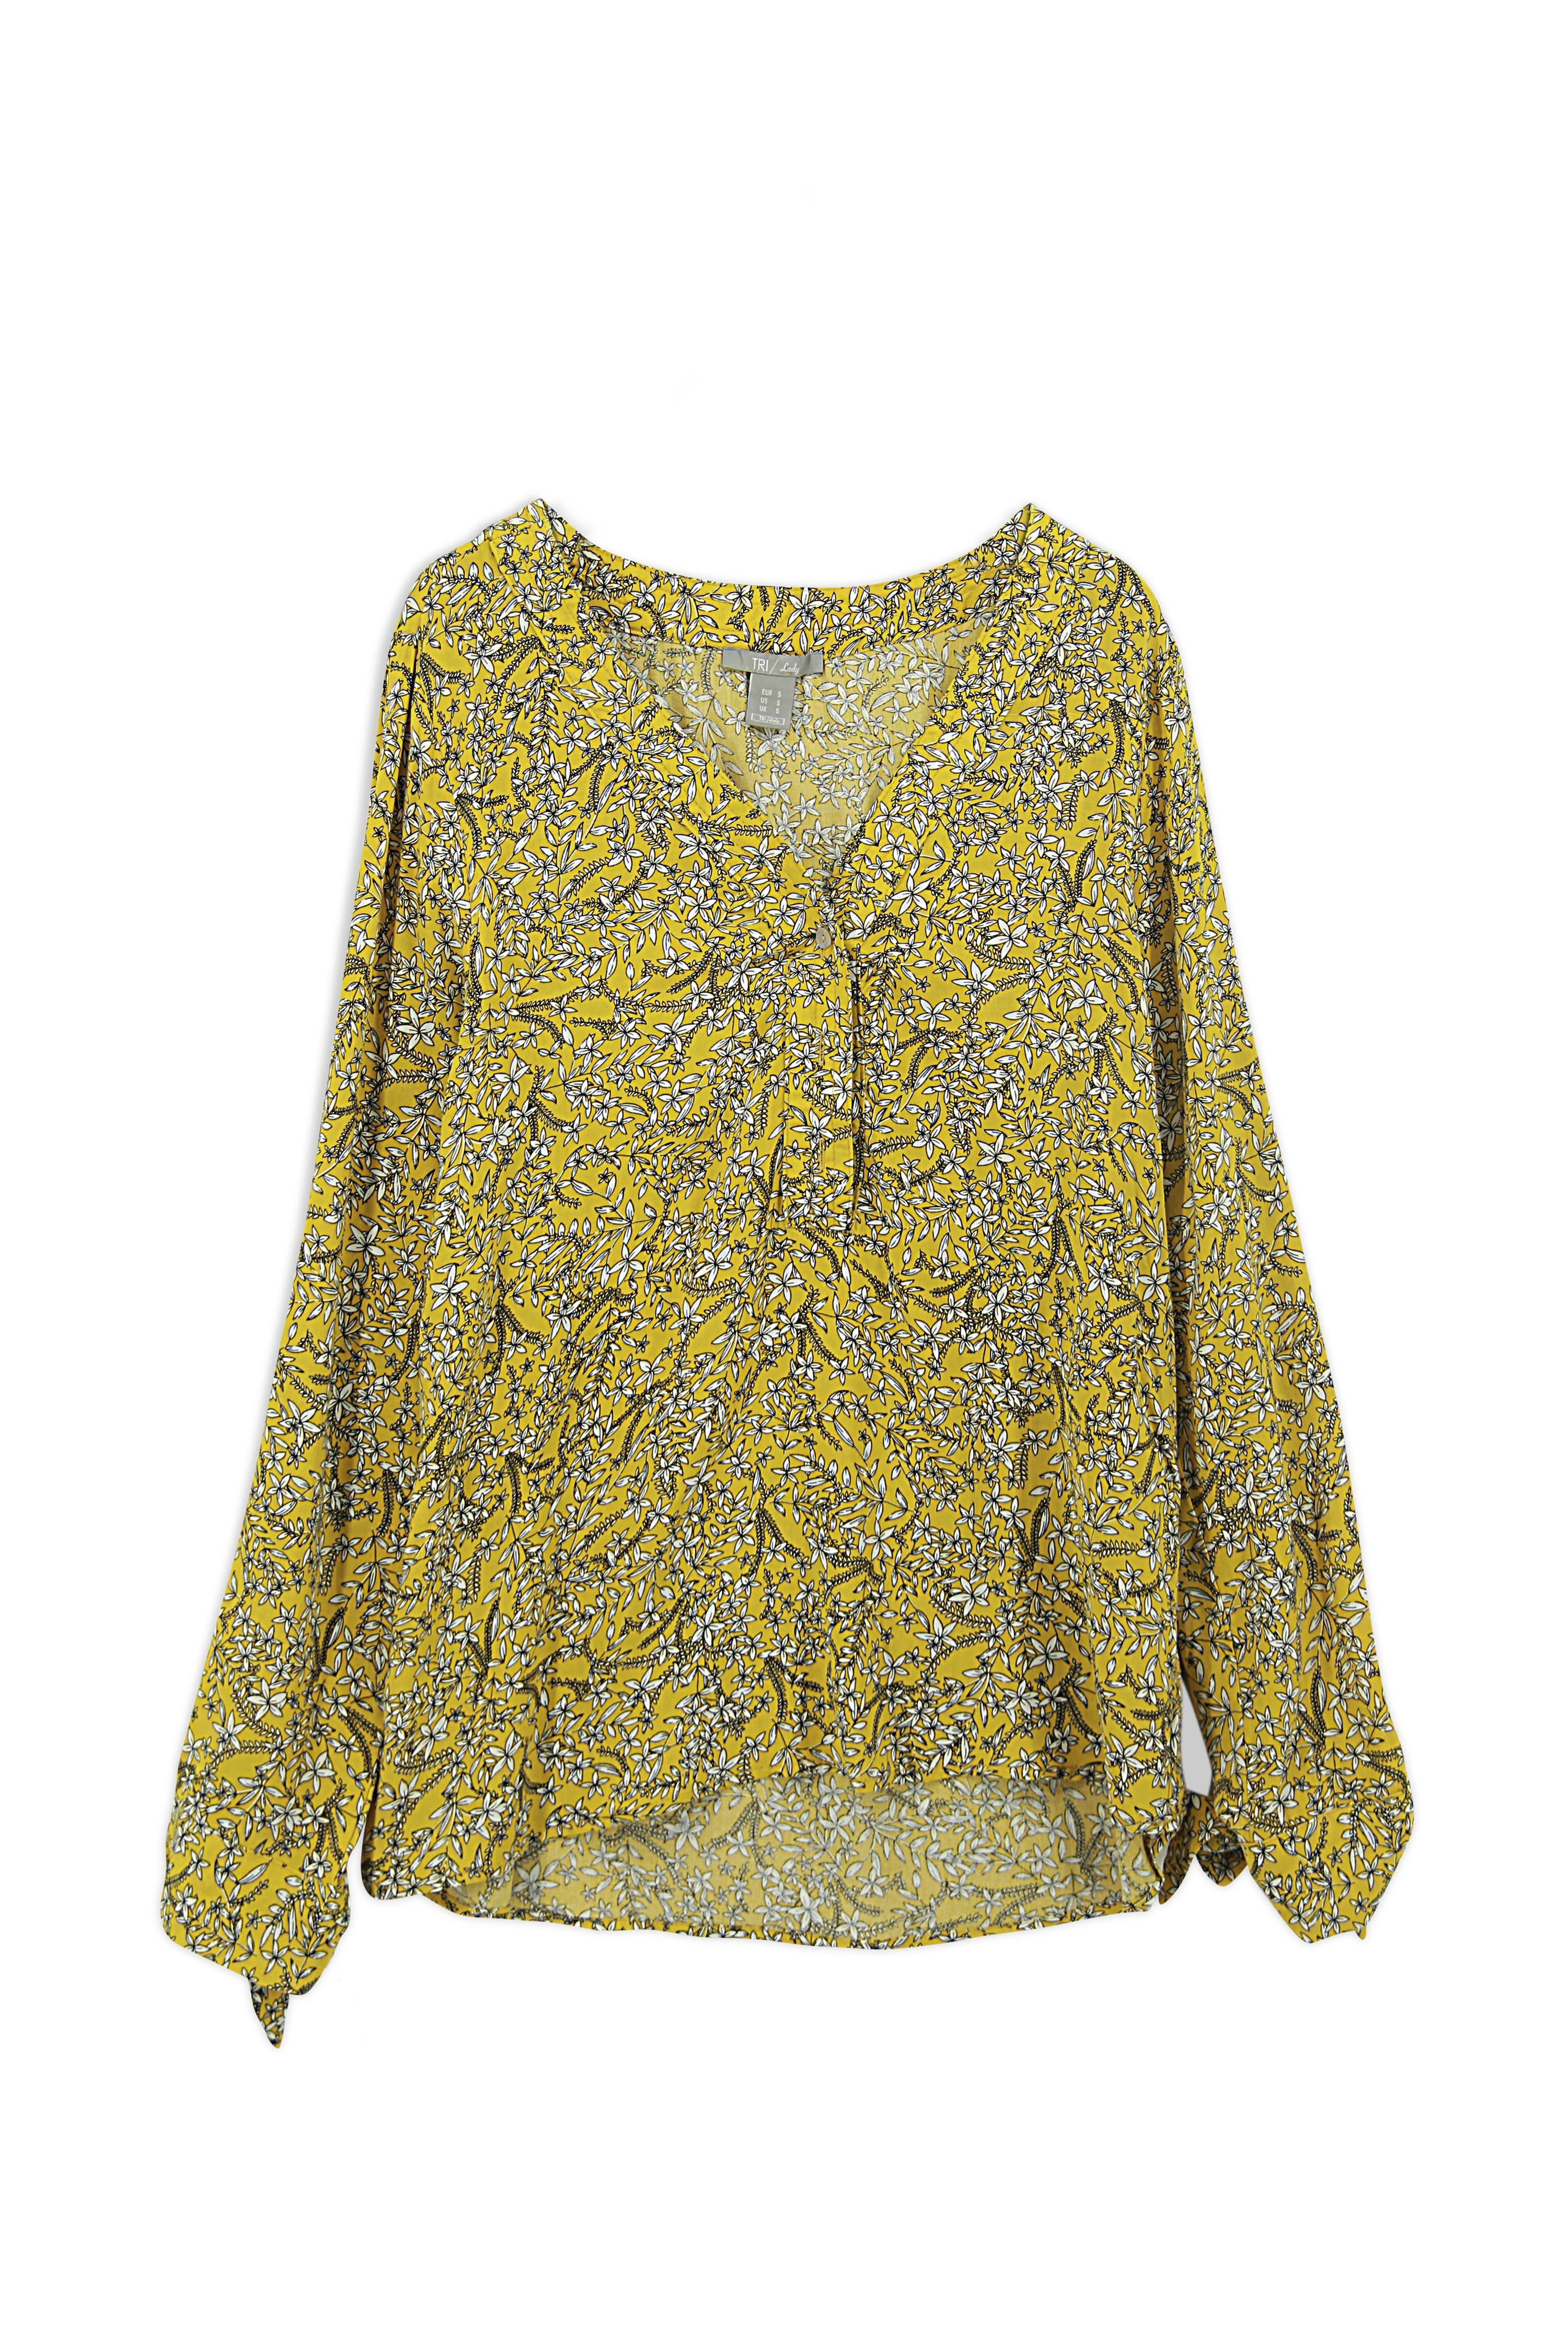 Lady Blouse Floral (LBF-4019)